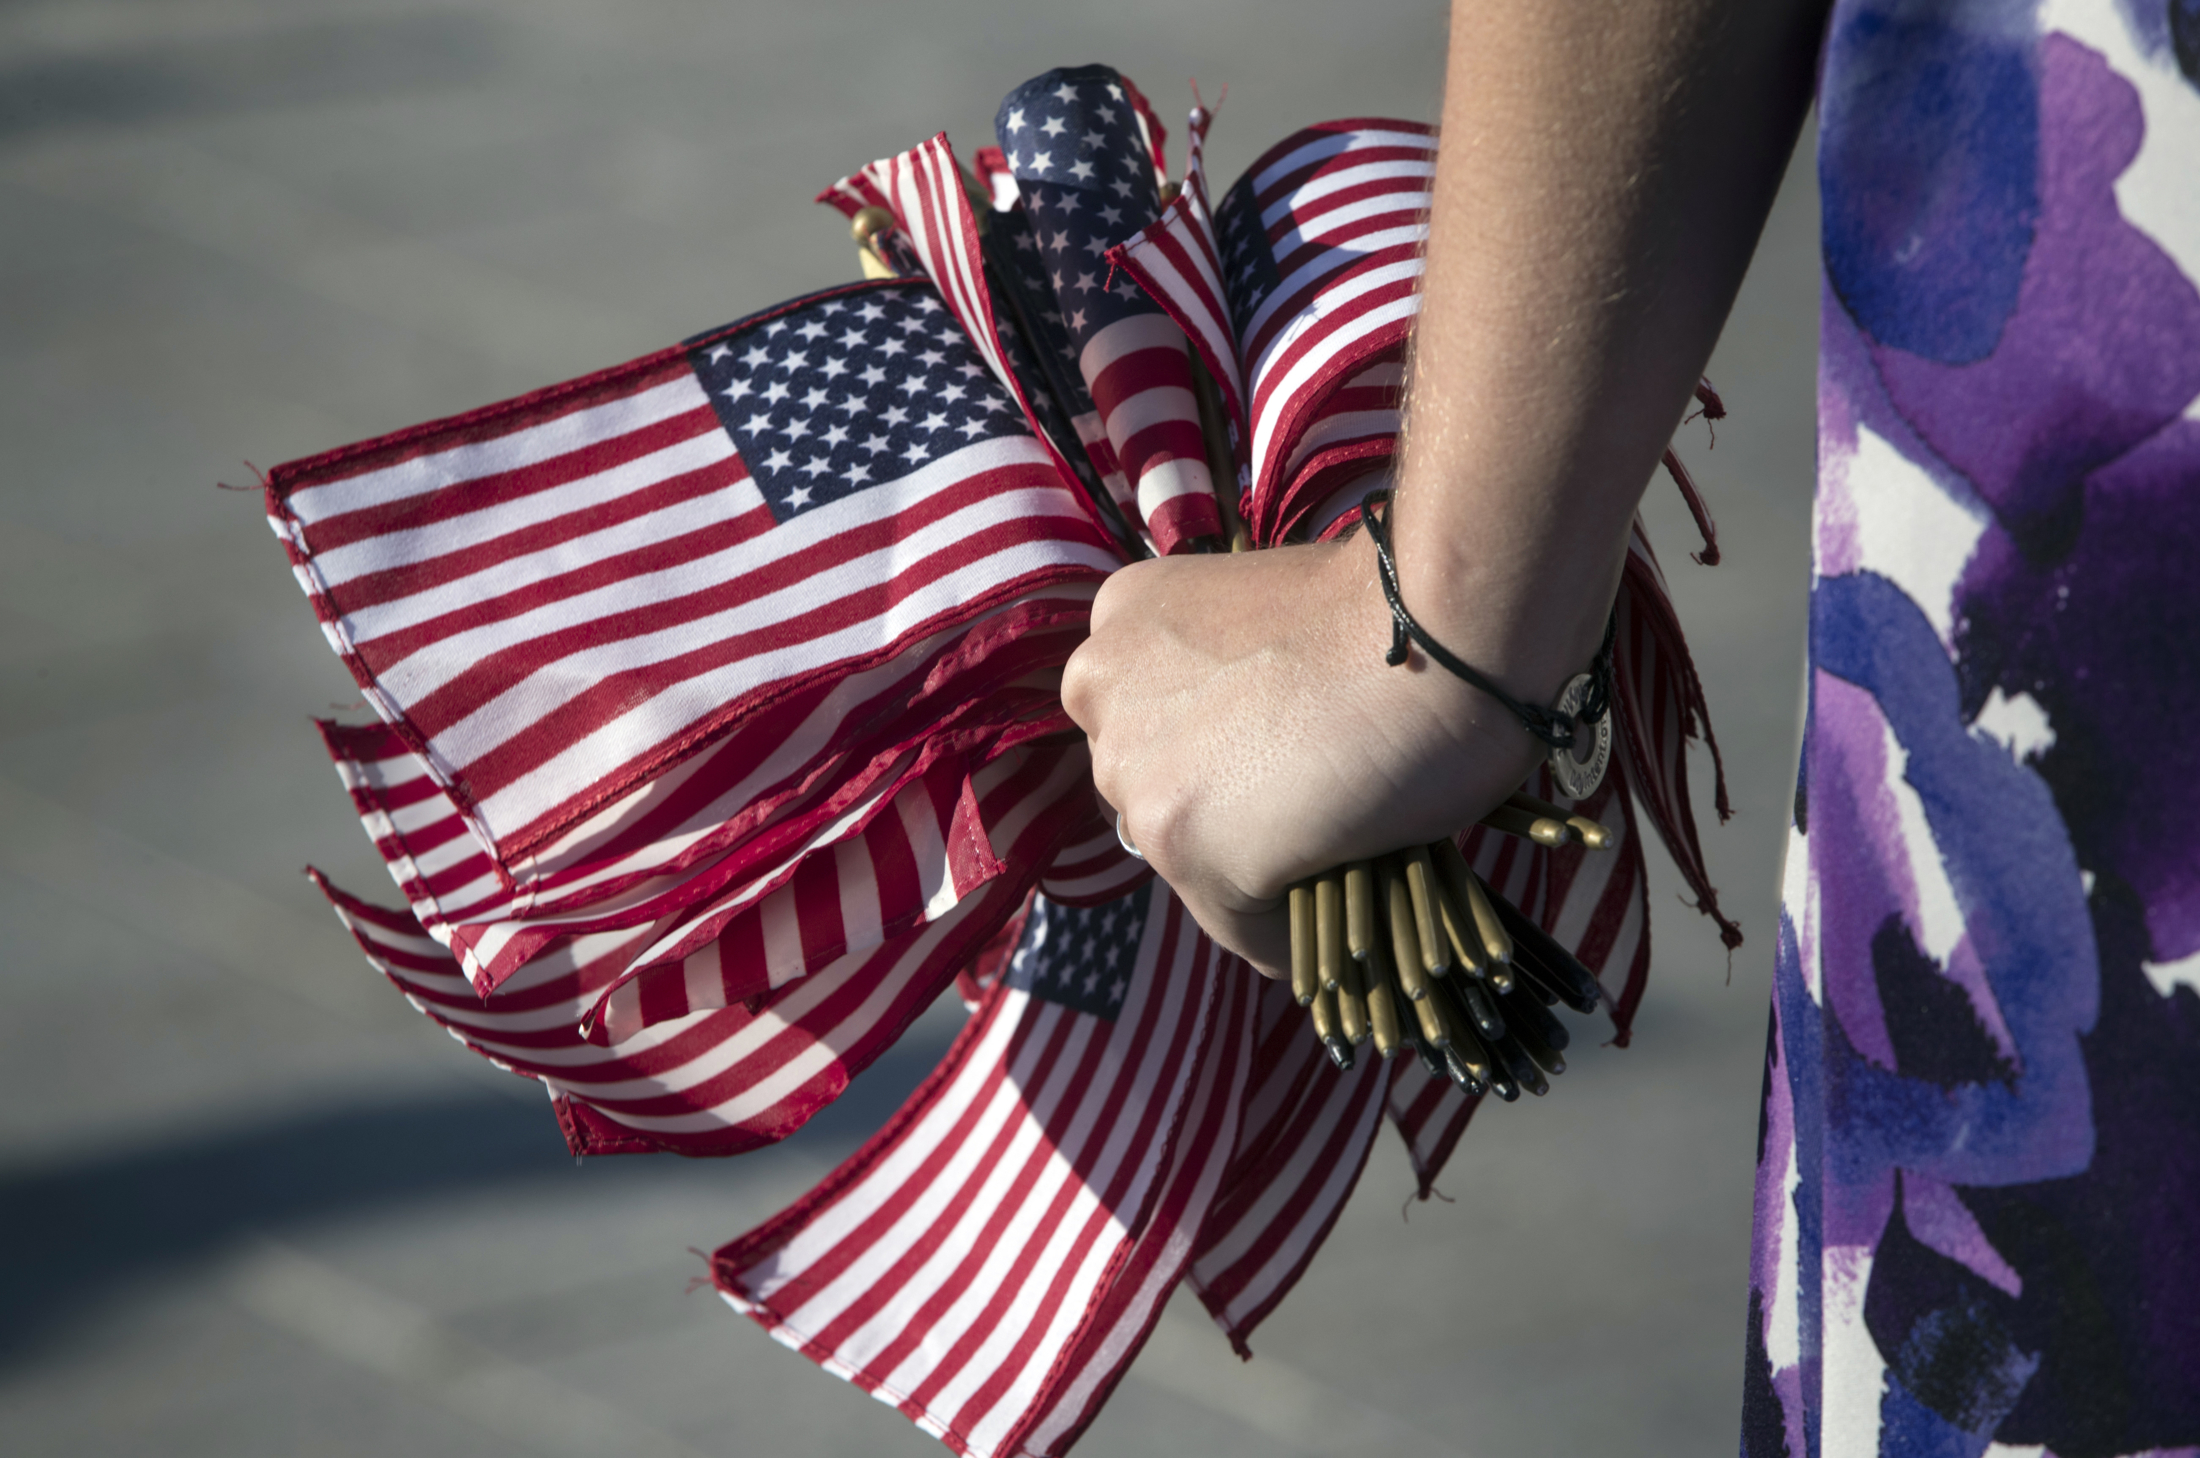 A congressional staffer holds a handful of small American flags to pass out as Democratic members of the House of Representatives rally for action on gun safety legislation after the deadly mass shooting in Las Vegas this week, at the Capitol in Washington, Wednesday, Oct. 4, 2017. (J. Scott Applewhite/AP)